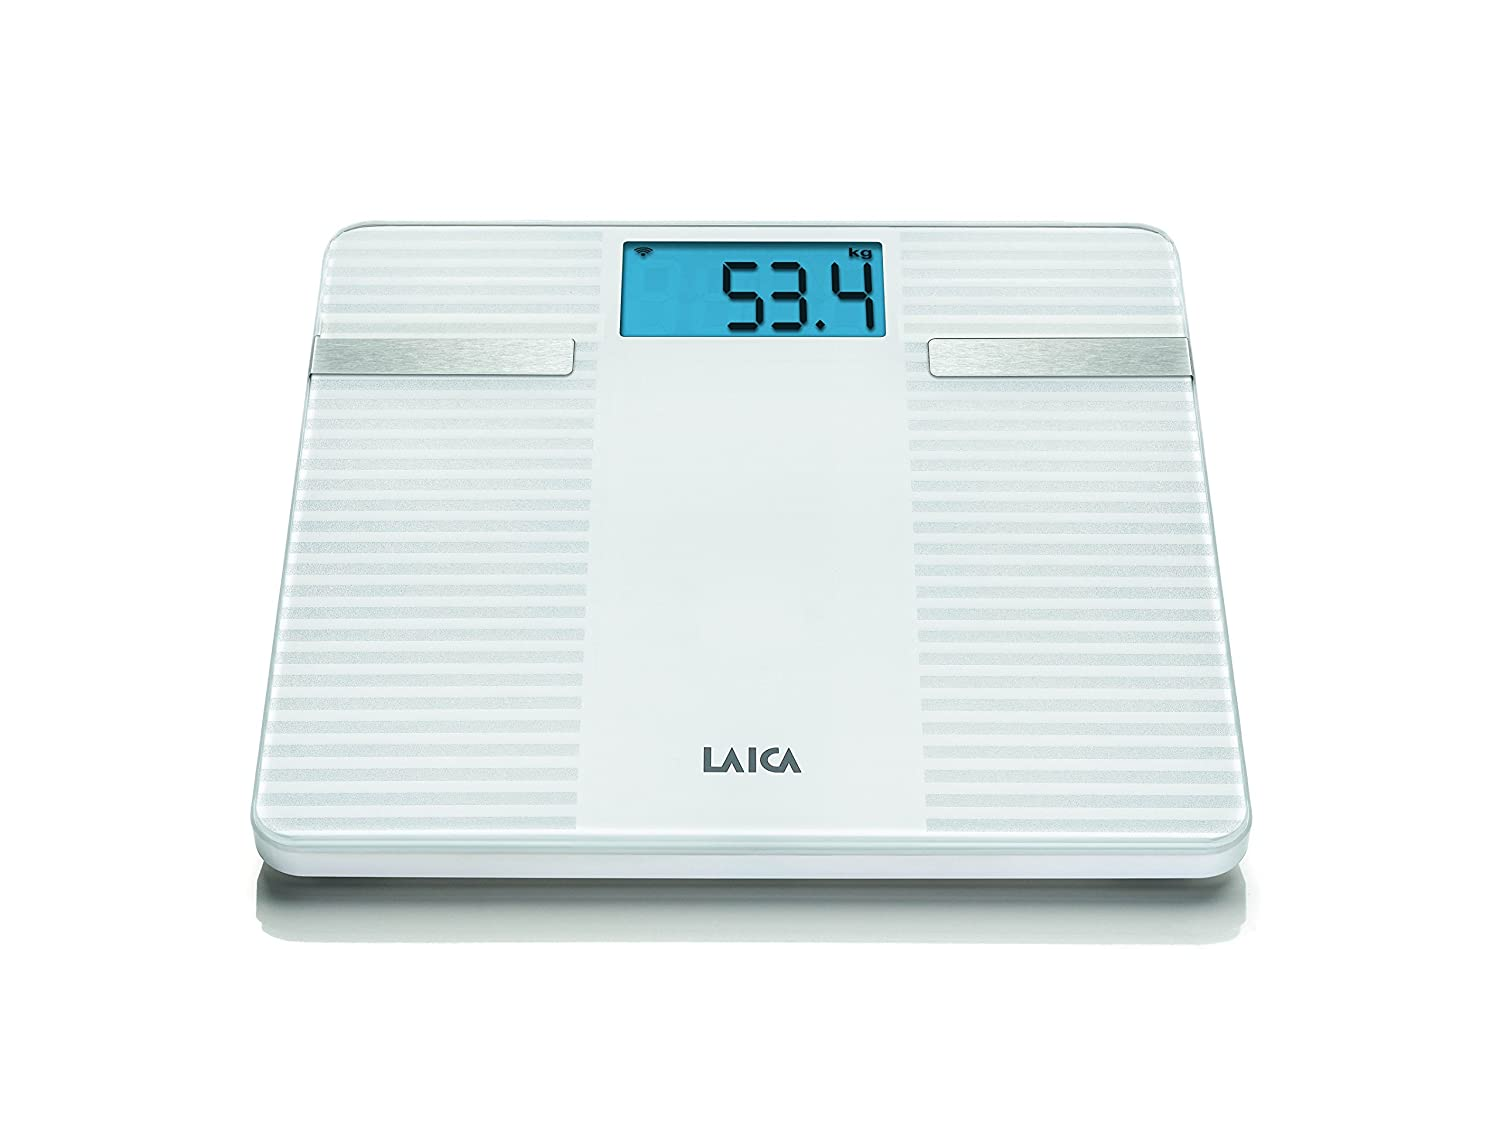 Laica PS7003 - Bascula composicion, color blanco: Amazon.es: Salud y cuidado personal